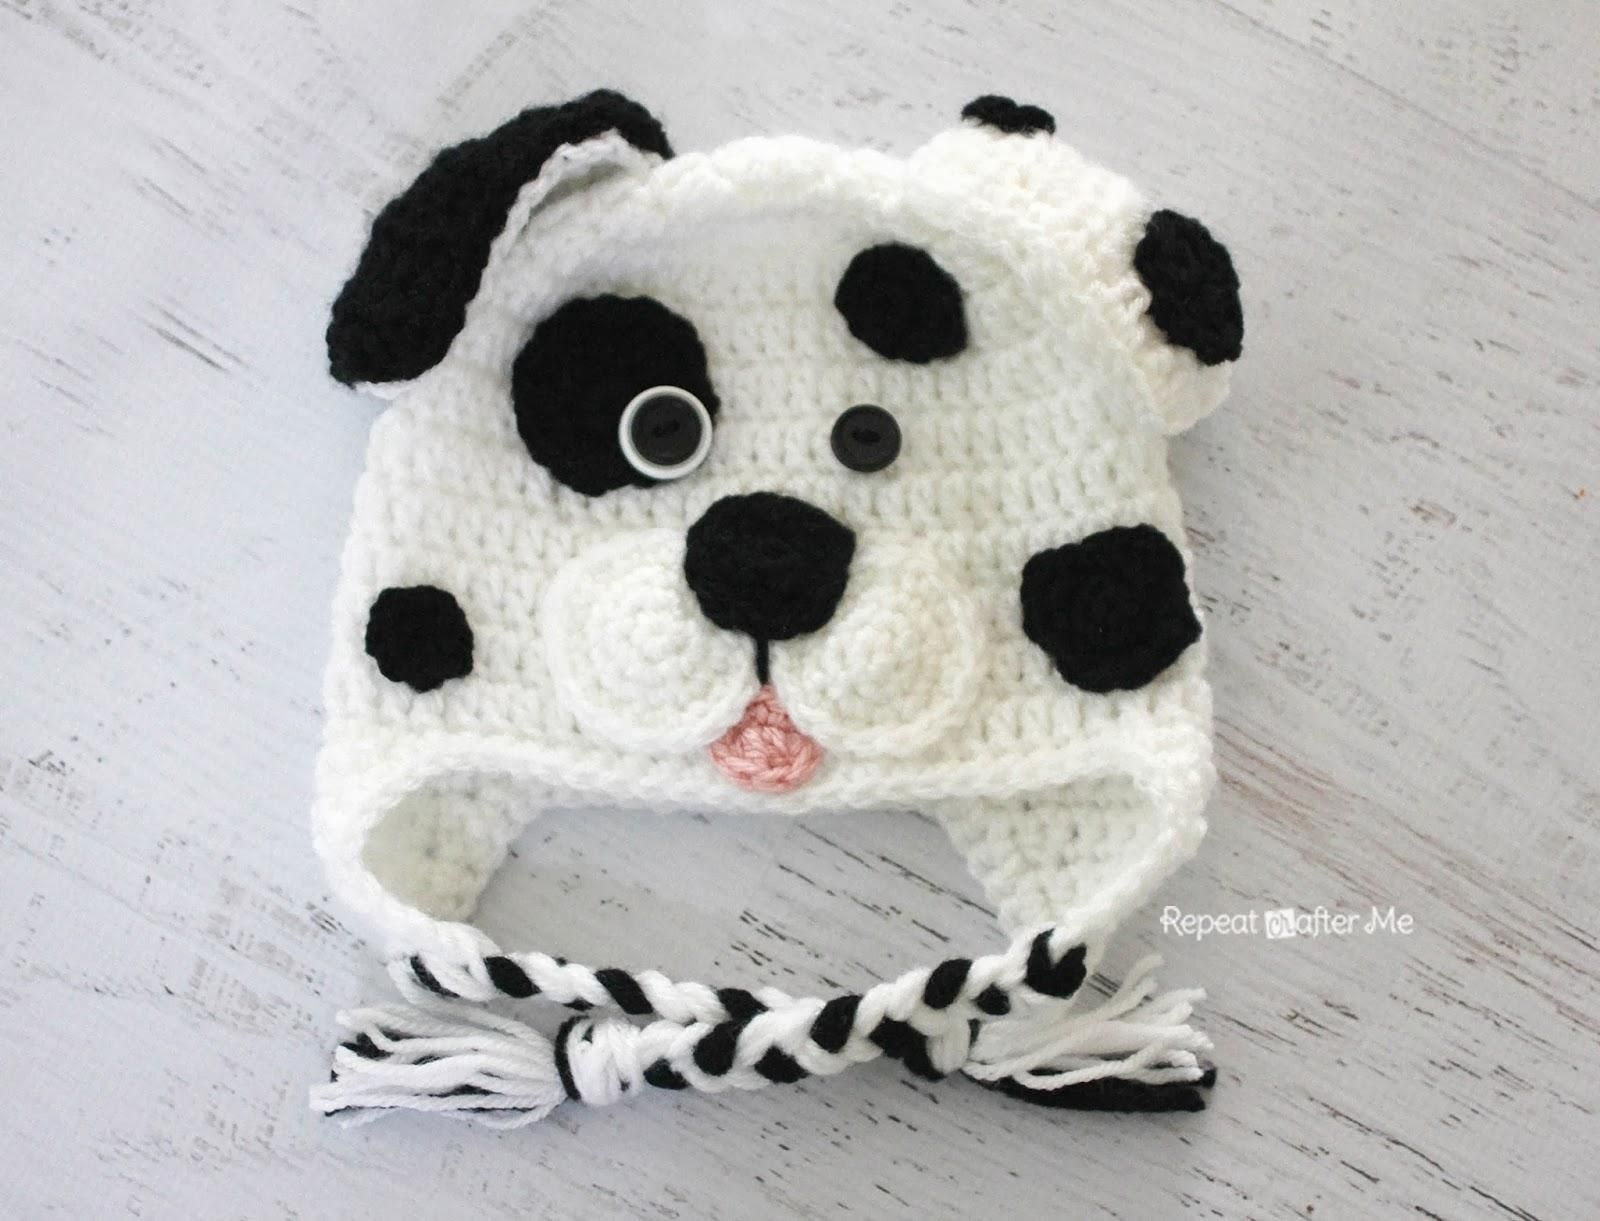 Crochet Dalmatian Dog Pattern (Repeat Crafter Me) | Dalmatian dogs ...